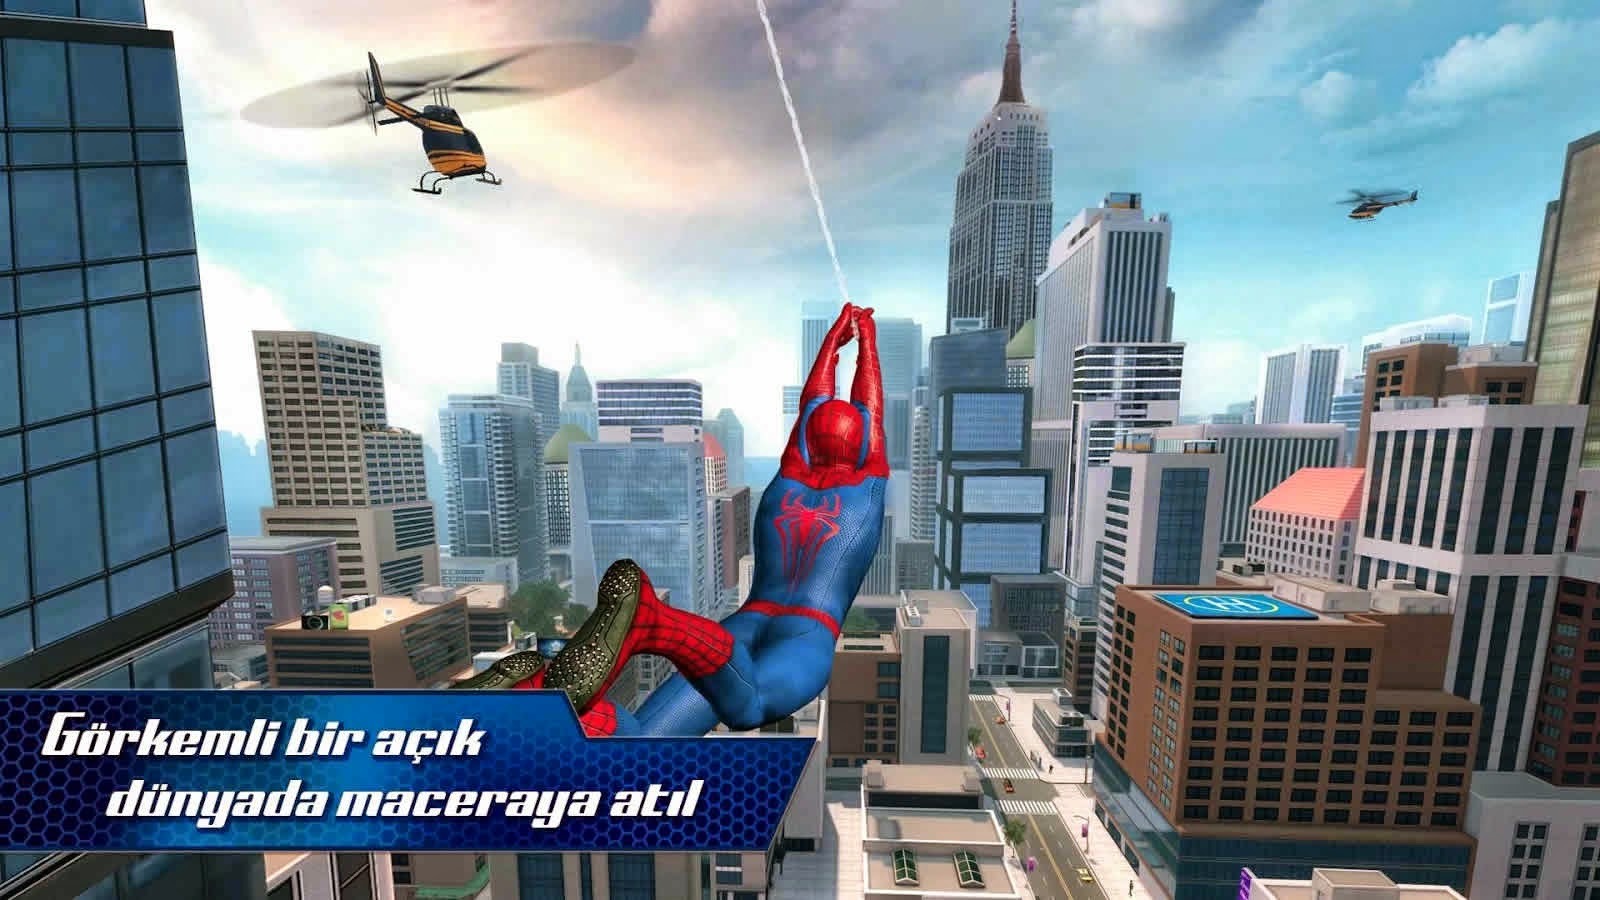 The Amazing Spider Man 2 v1.1.0ad (Offline) Apk